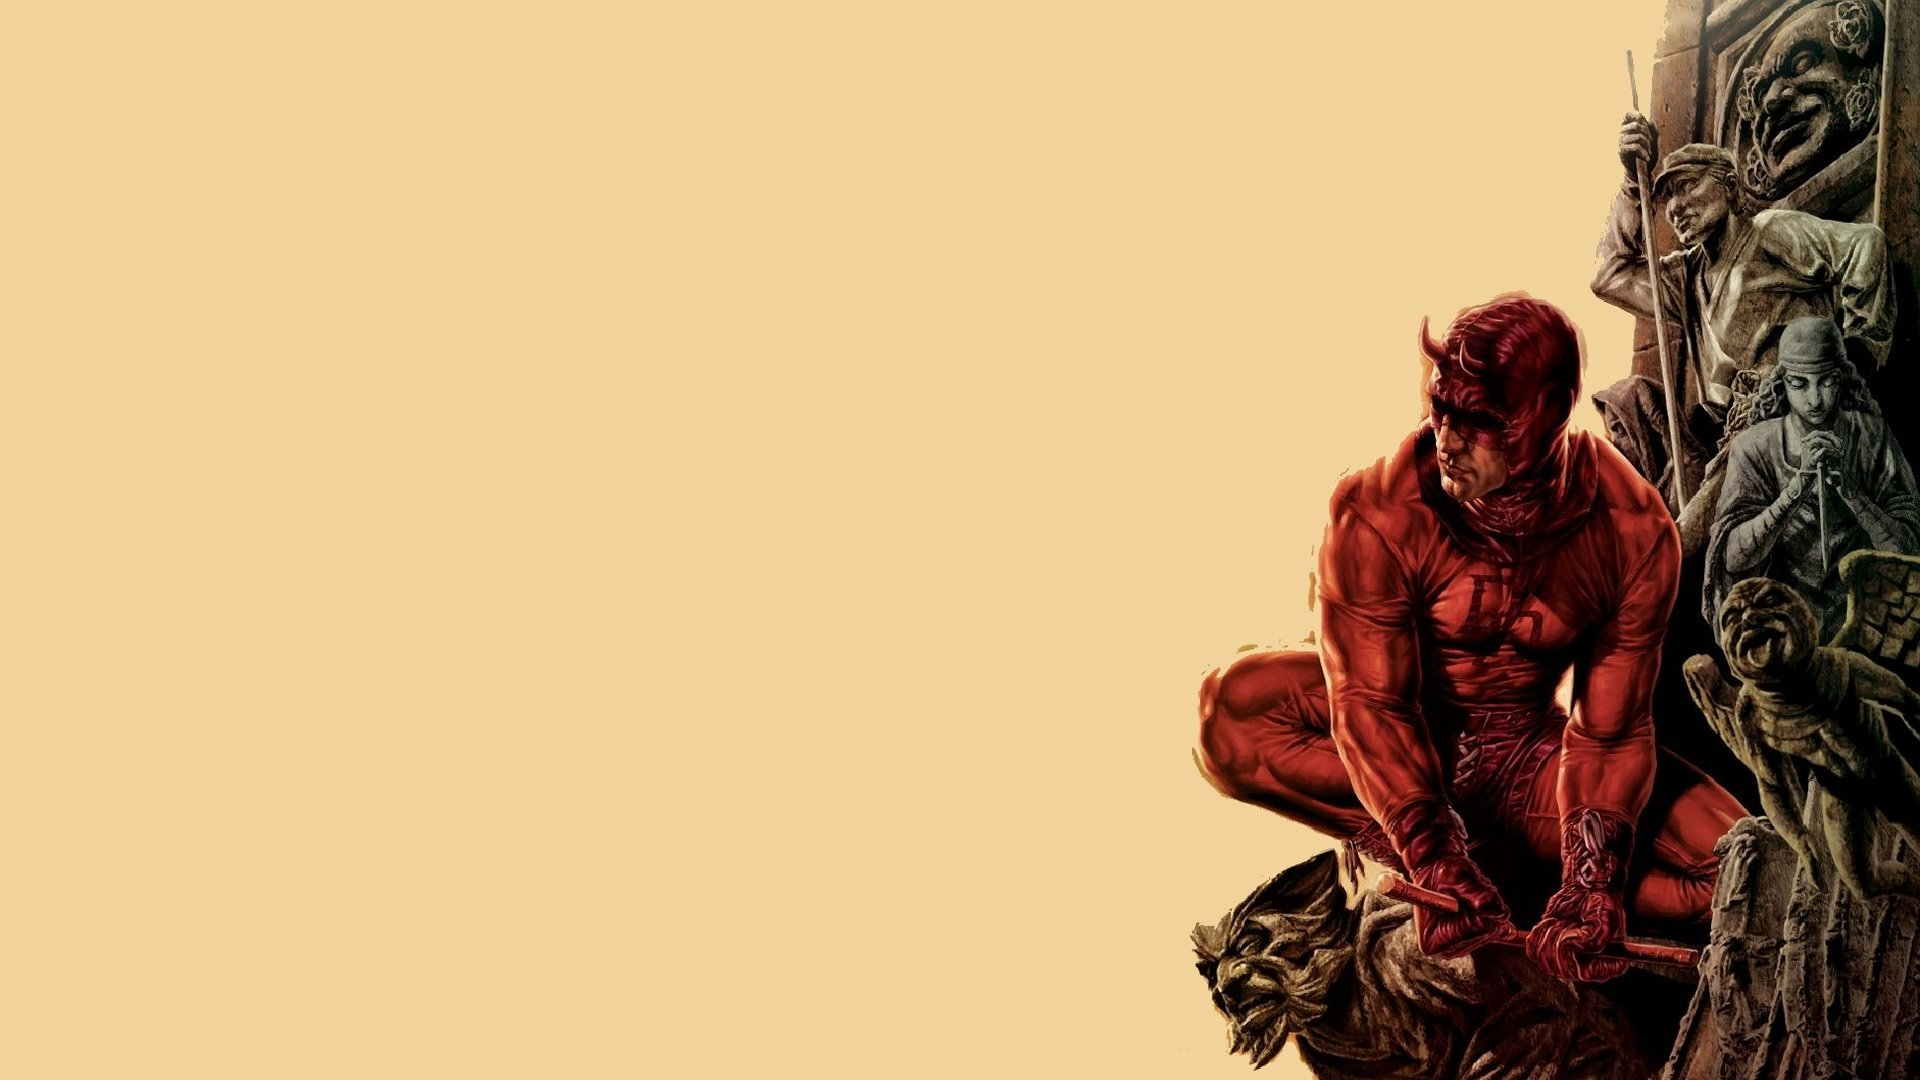 Comics - Daredevil  Wallpaper